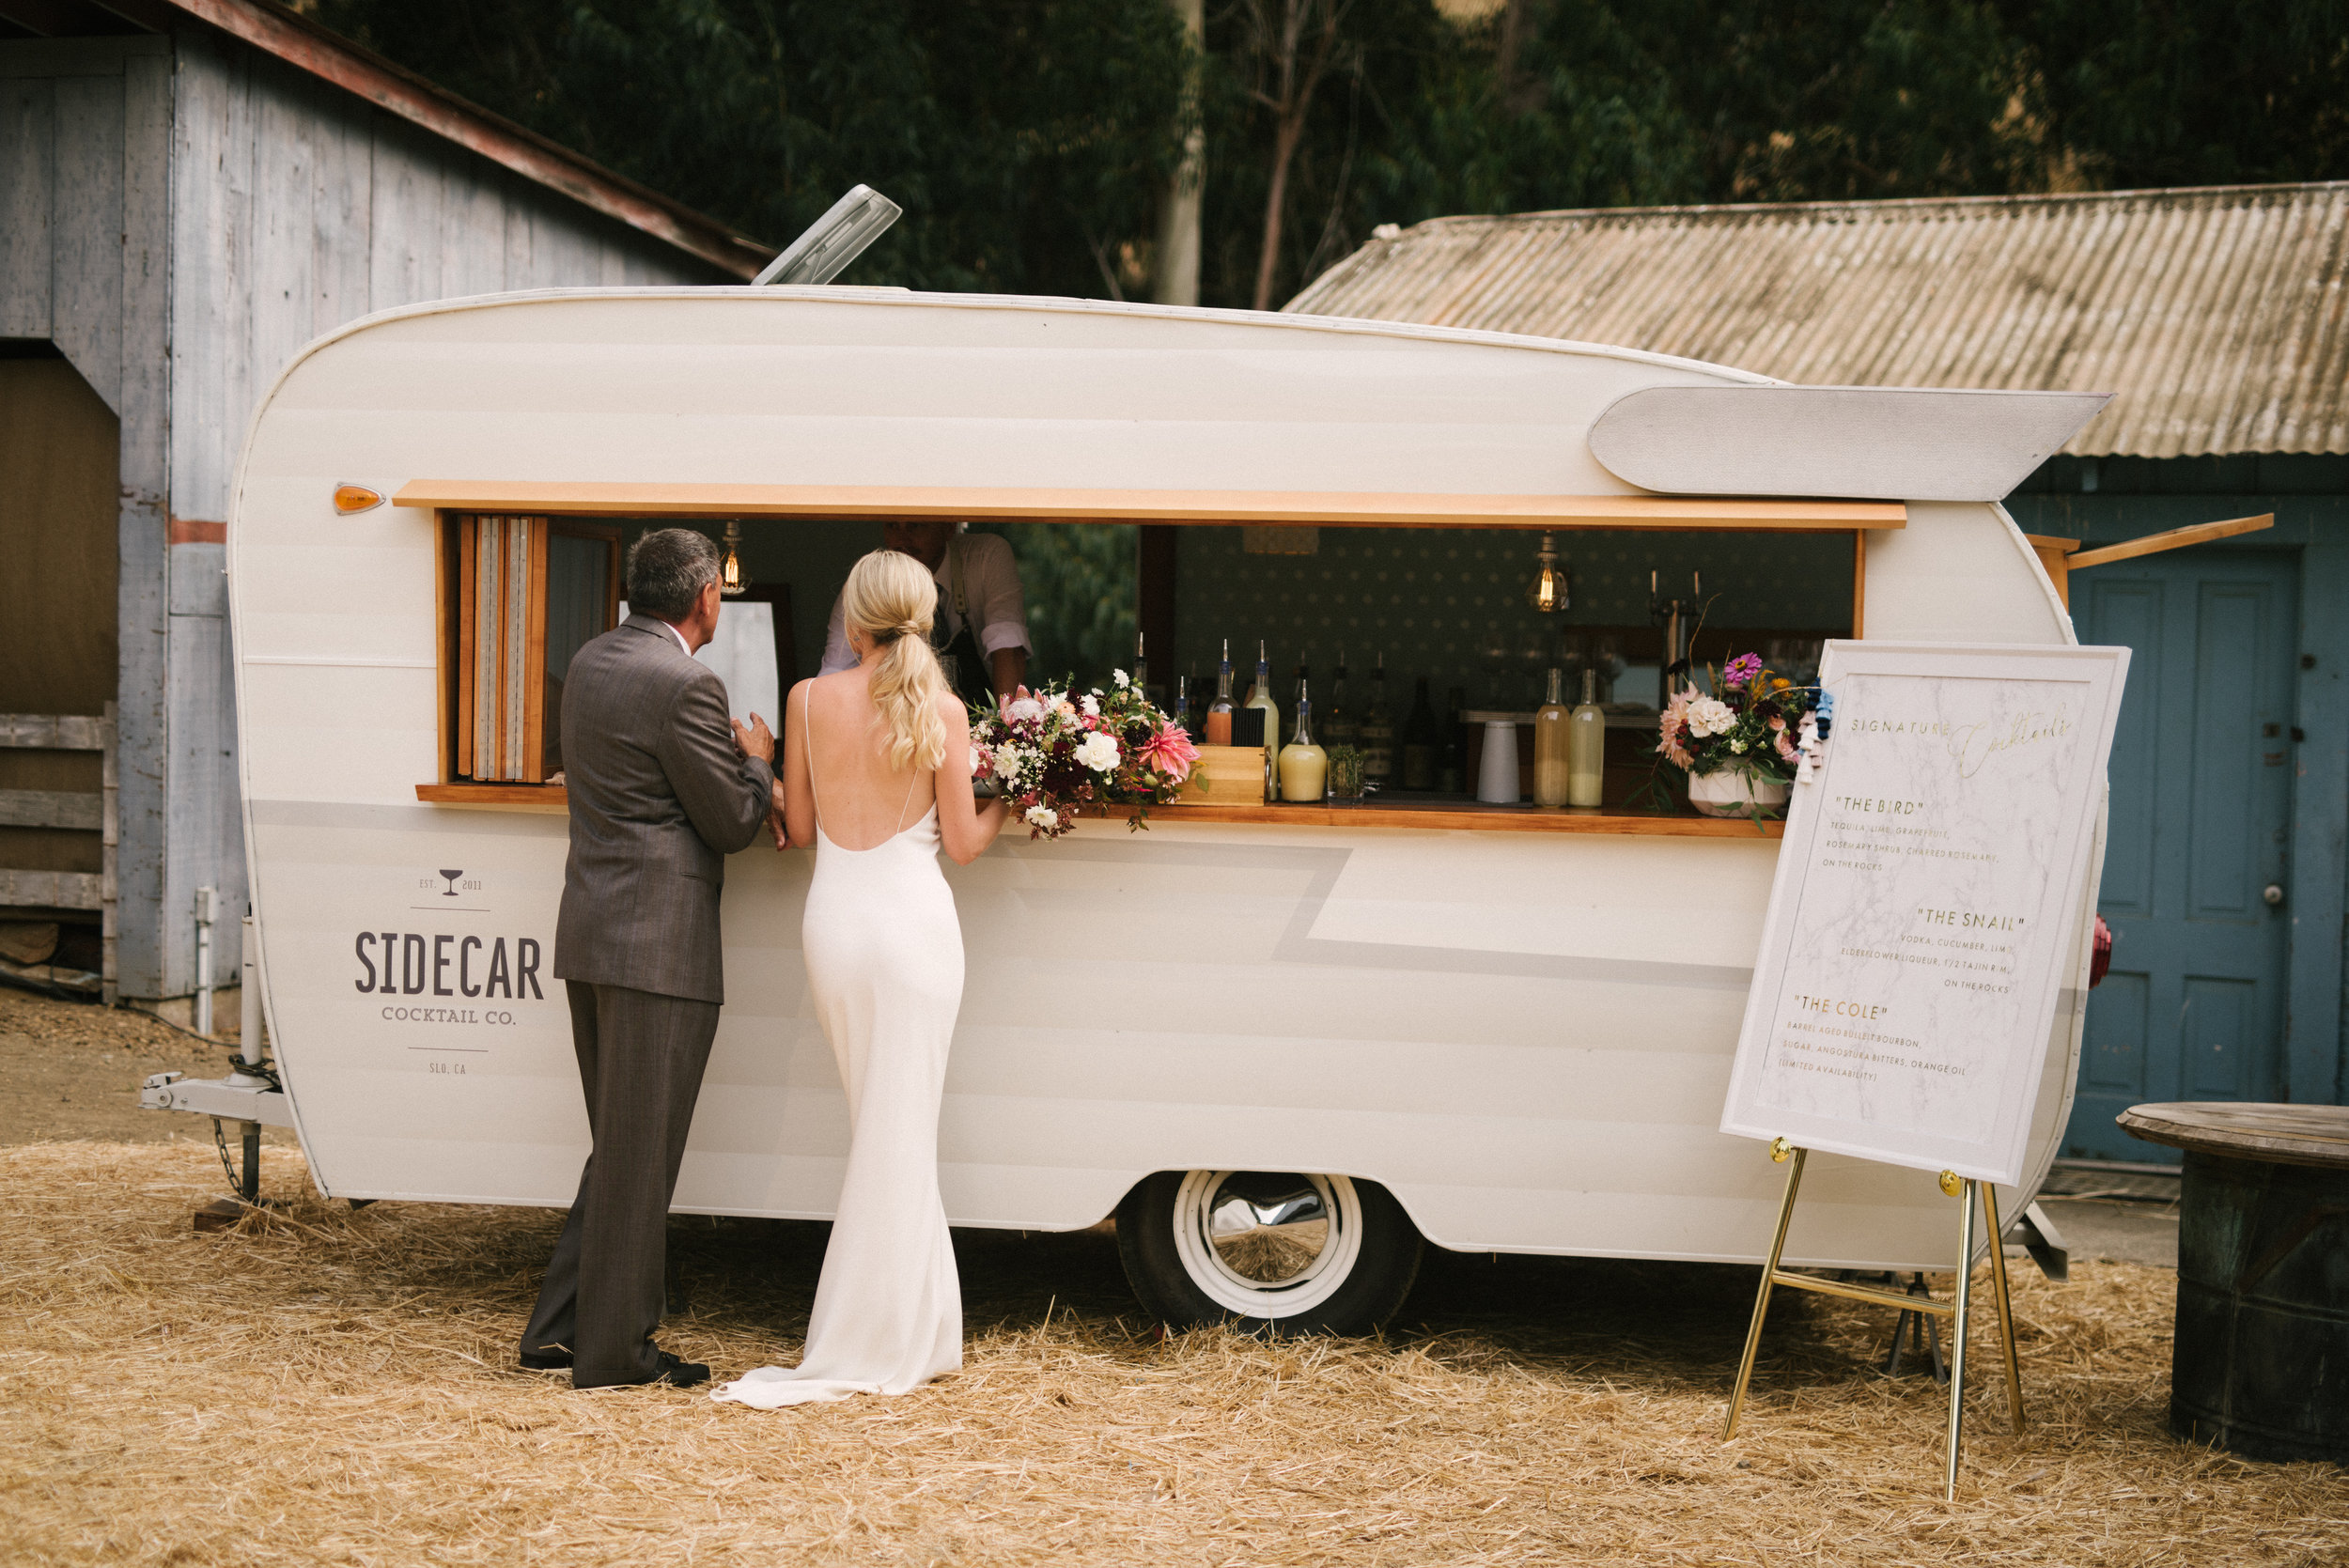 A quiet moment between a bride and her father in front of our Sidecar Shasta Mobile bar and vintage vending trailer.